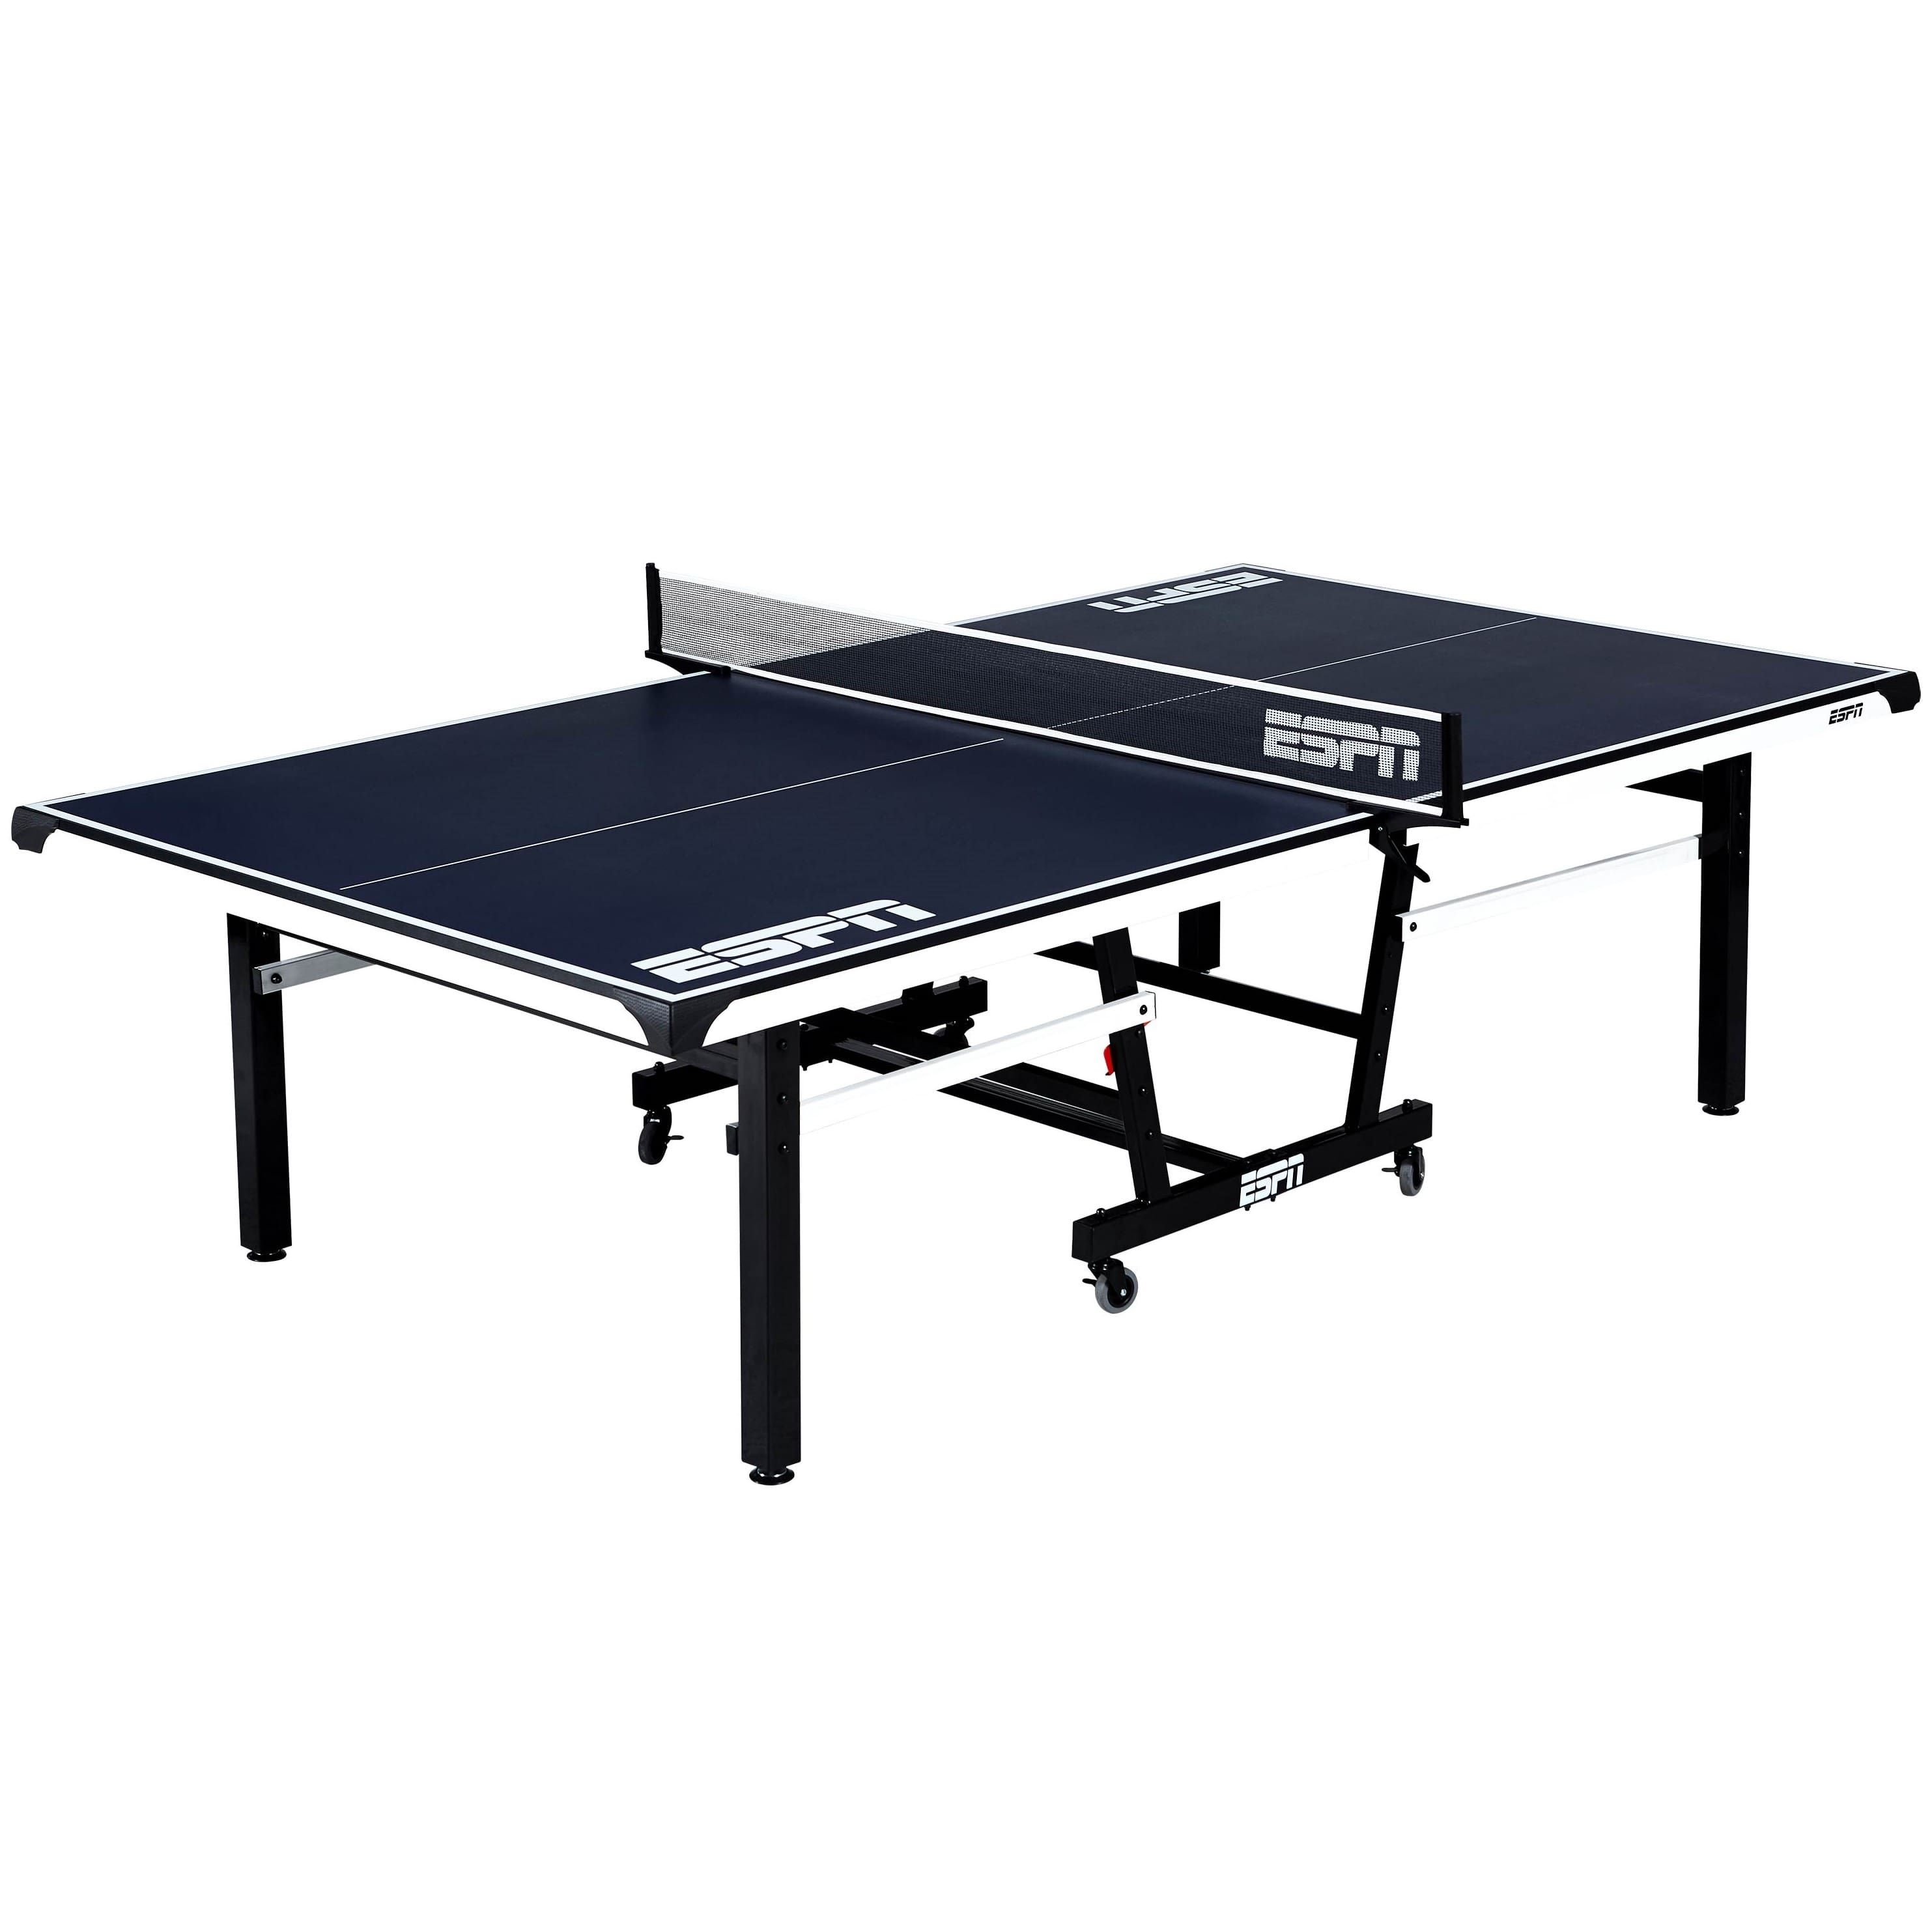 Official Size ESPN Table Tennis Table with Cover $240 Free Shipping